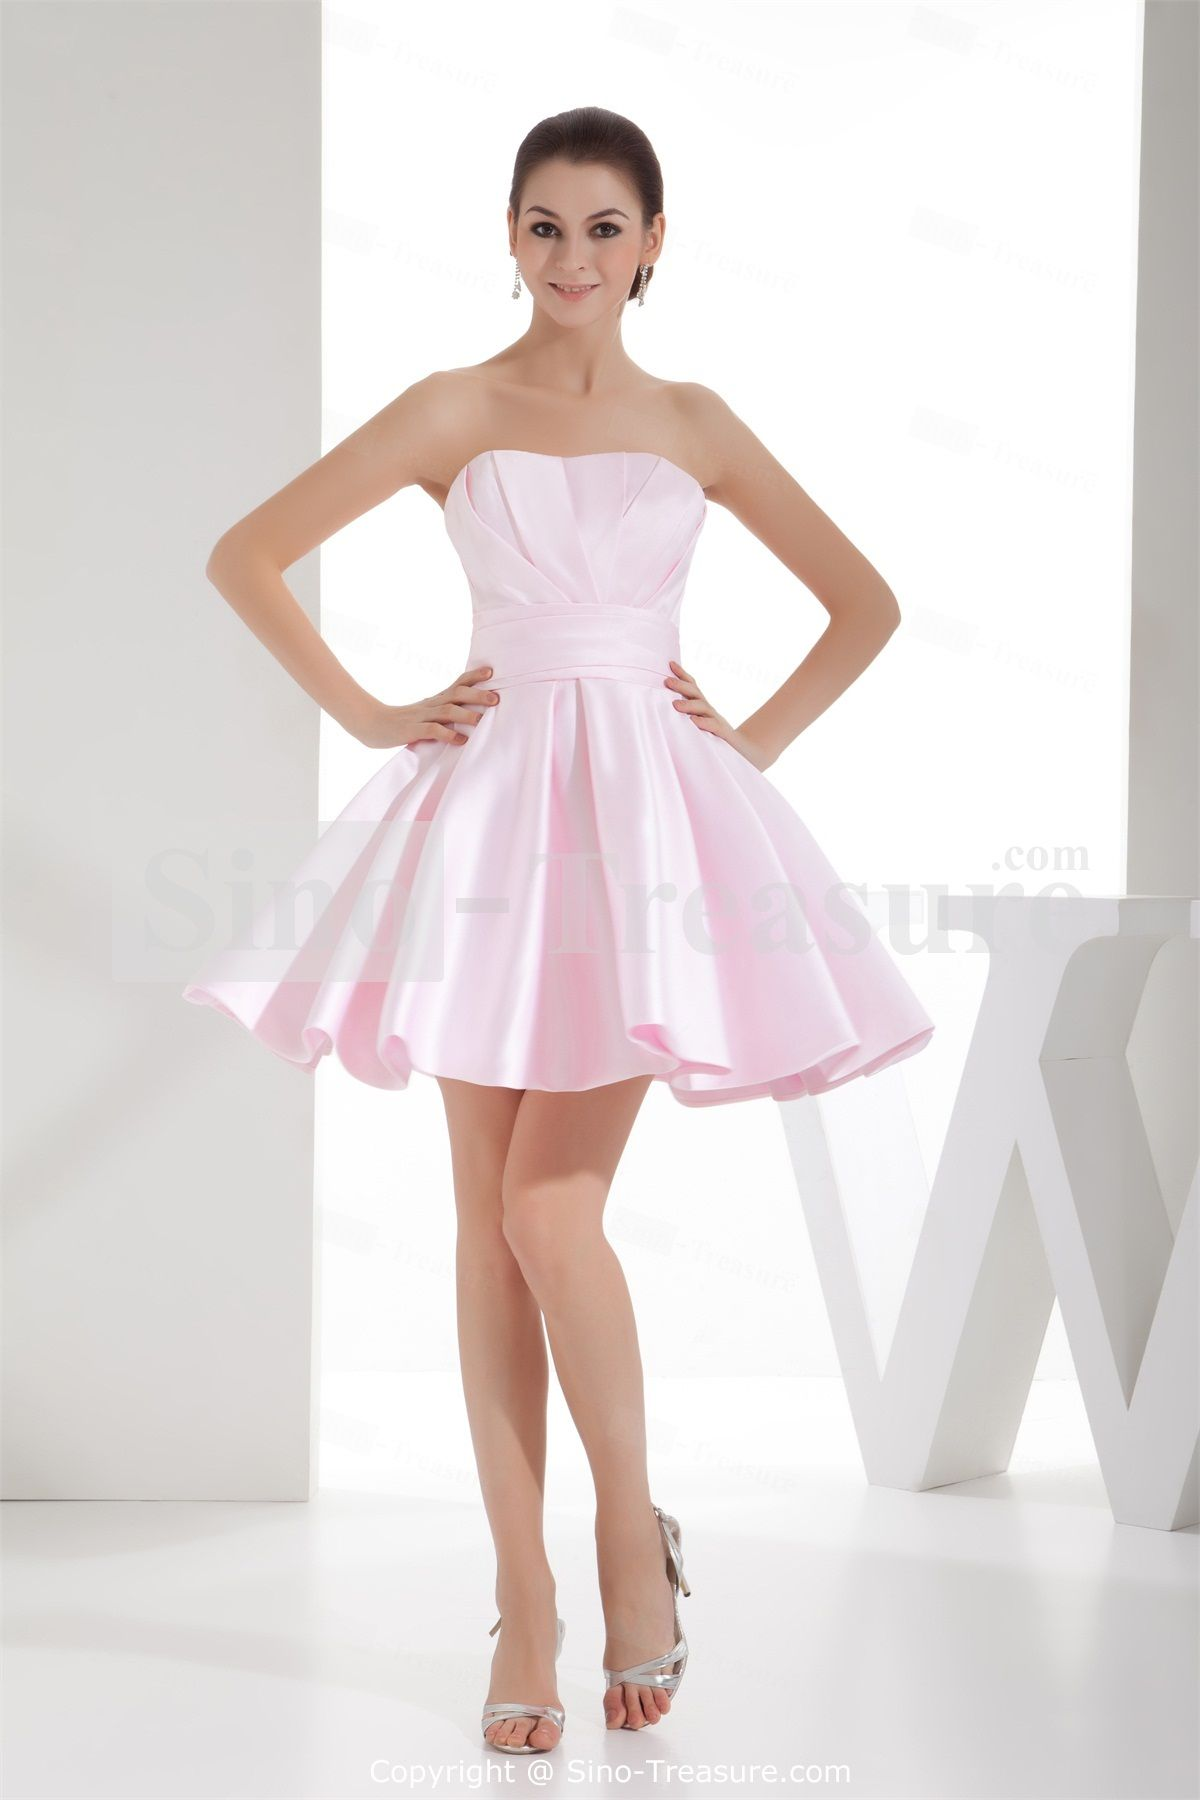 Pink Short Mini Satin Ruffles Soft Sweetheart A Line Bridesmaid Dress Whole Price